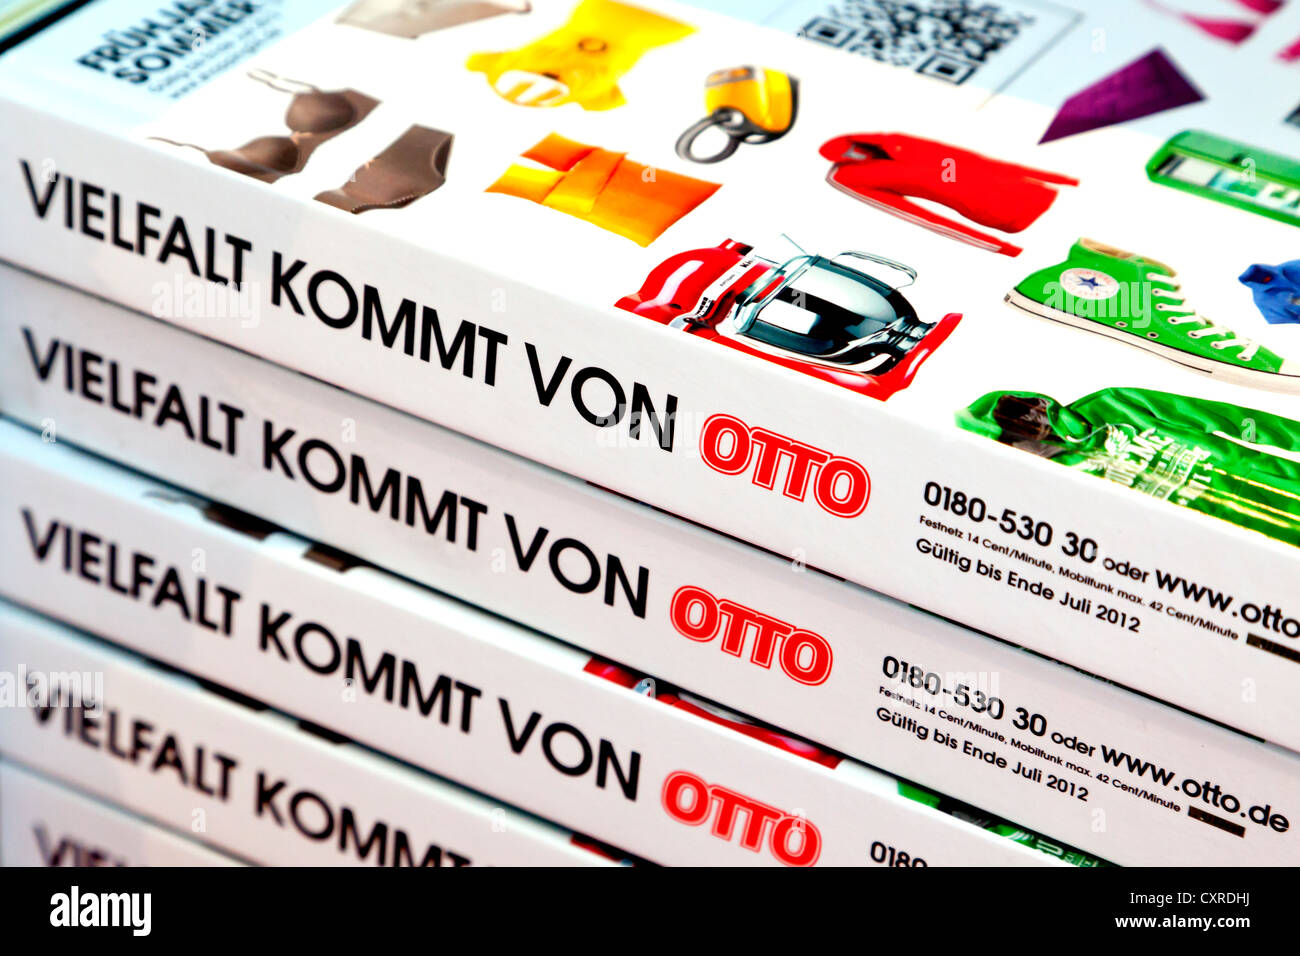 Otto Gardinen Store Mail Order Catalogues Stock Photos Mail Order Catalogues Stock